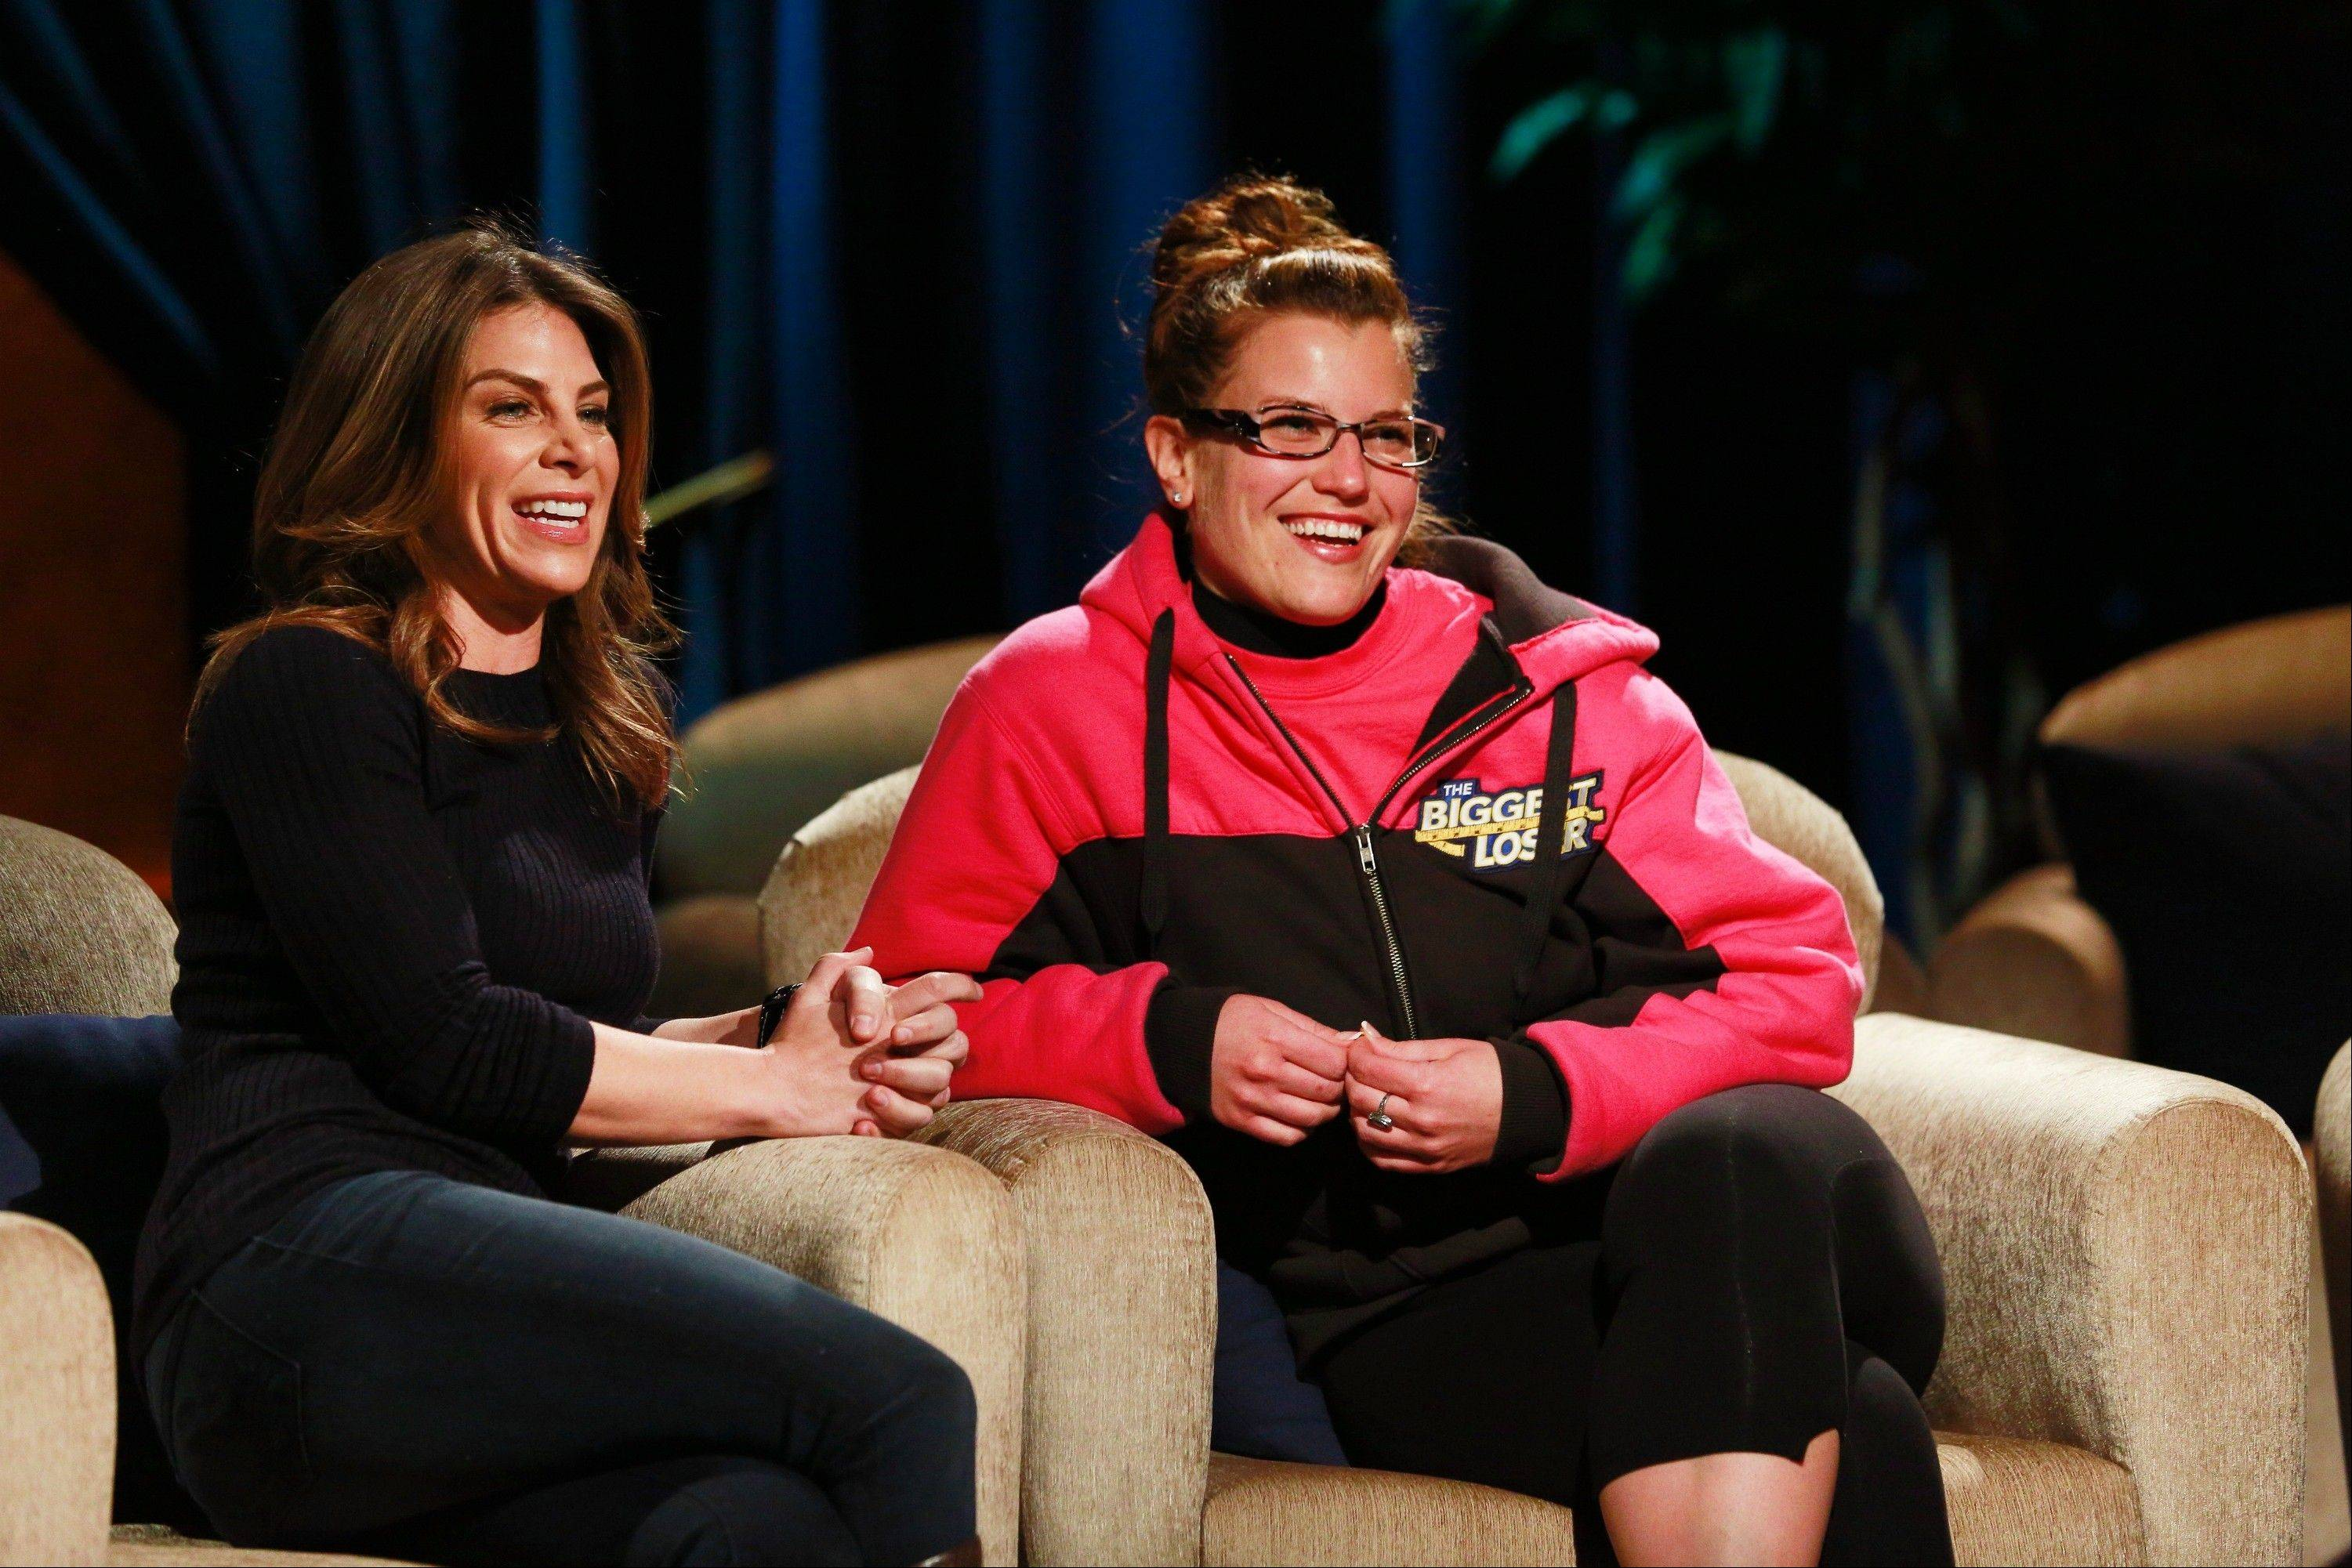 """Biggest Loser"" trainer Jillian Michaels, left, sits next to Wheeling's Danni Allen. Allen made it through the latest round of competition after spending two weeks at home working and working out on her own."